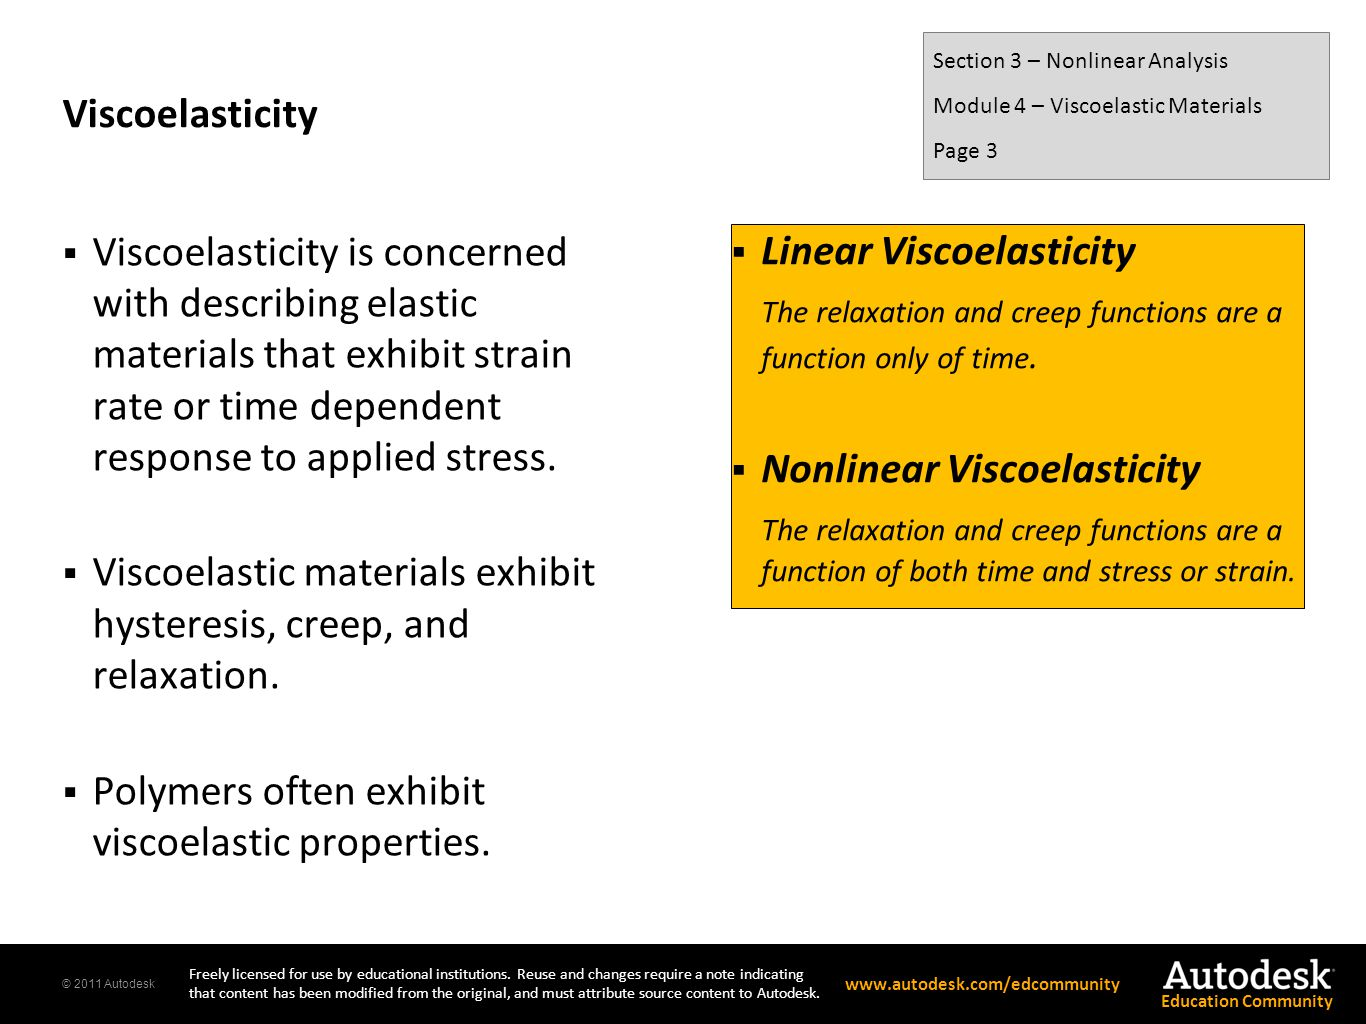 Viscoelastic materials exhibit hysteresis, creep, and relaxation.